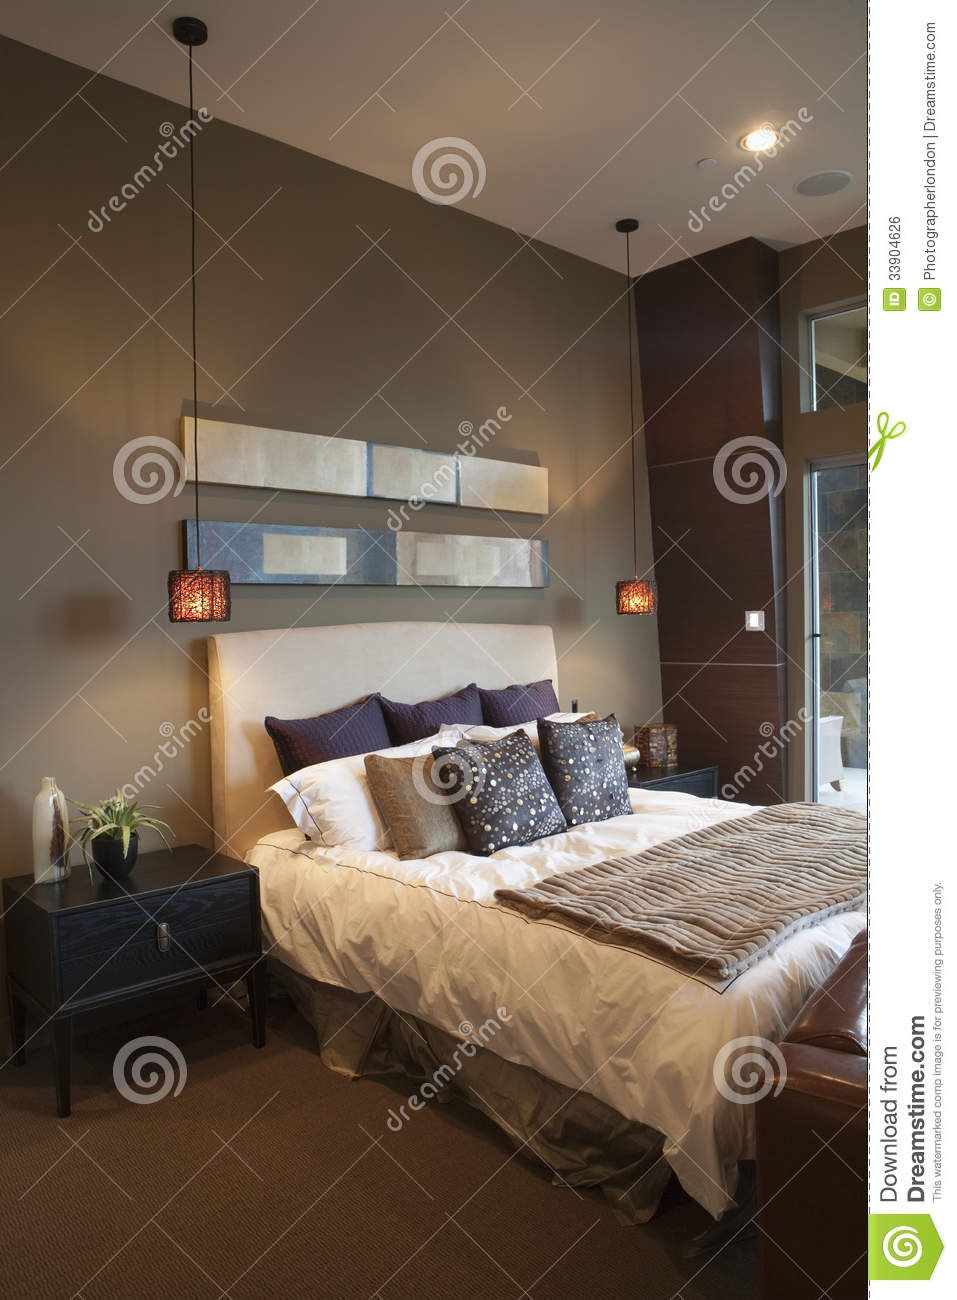 Pendant lights in bedroom